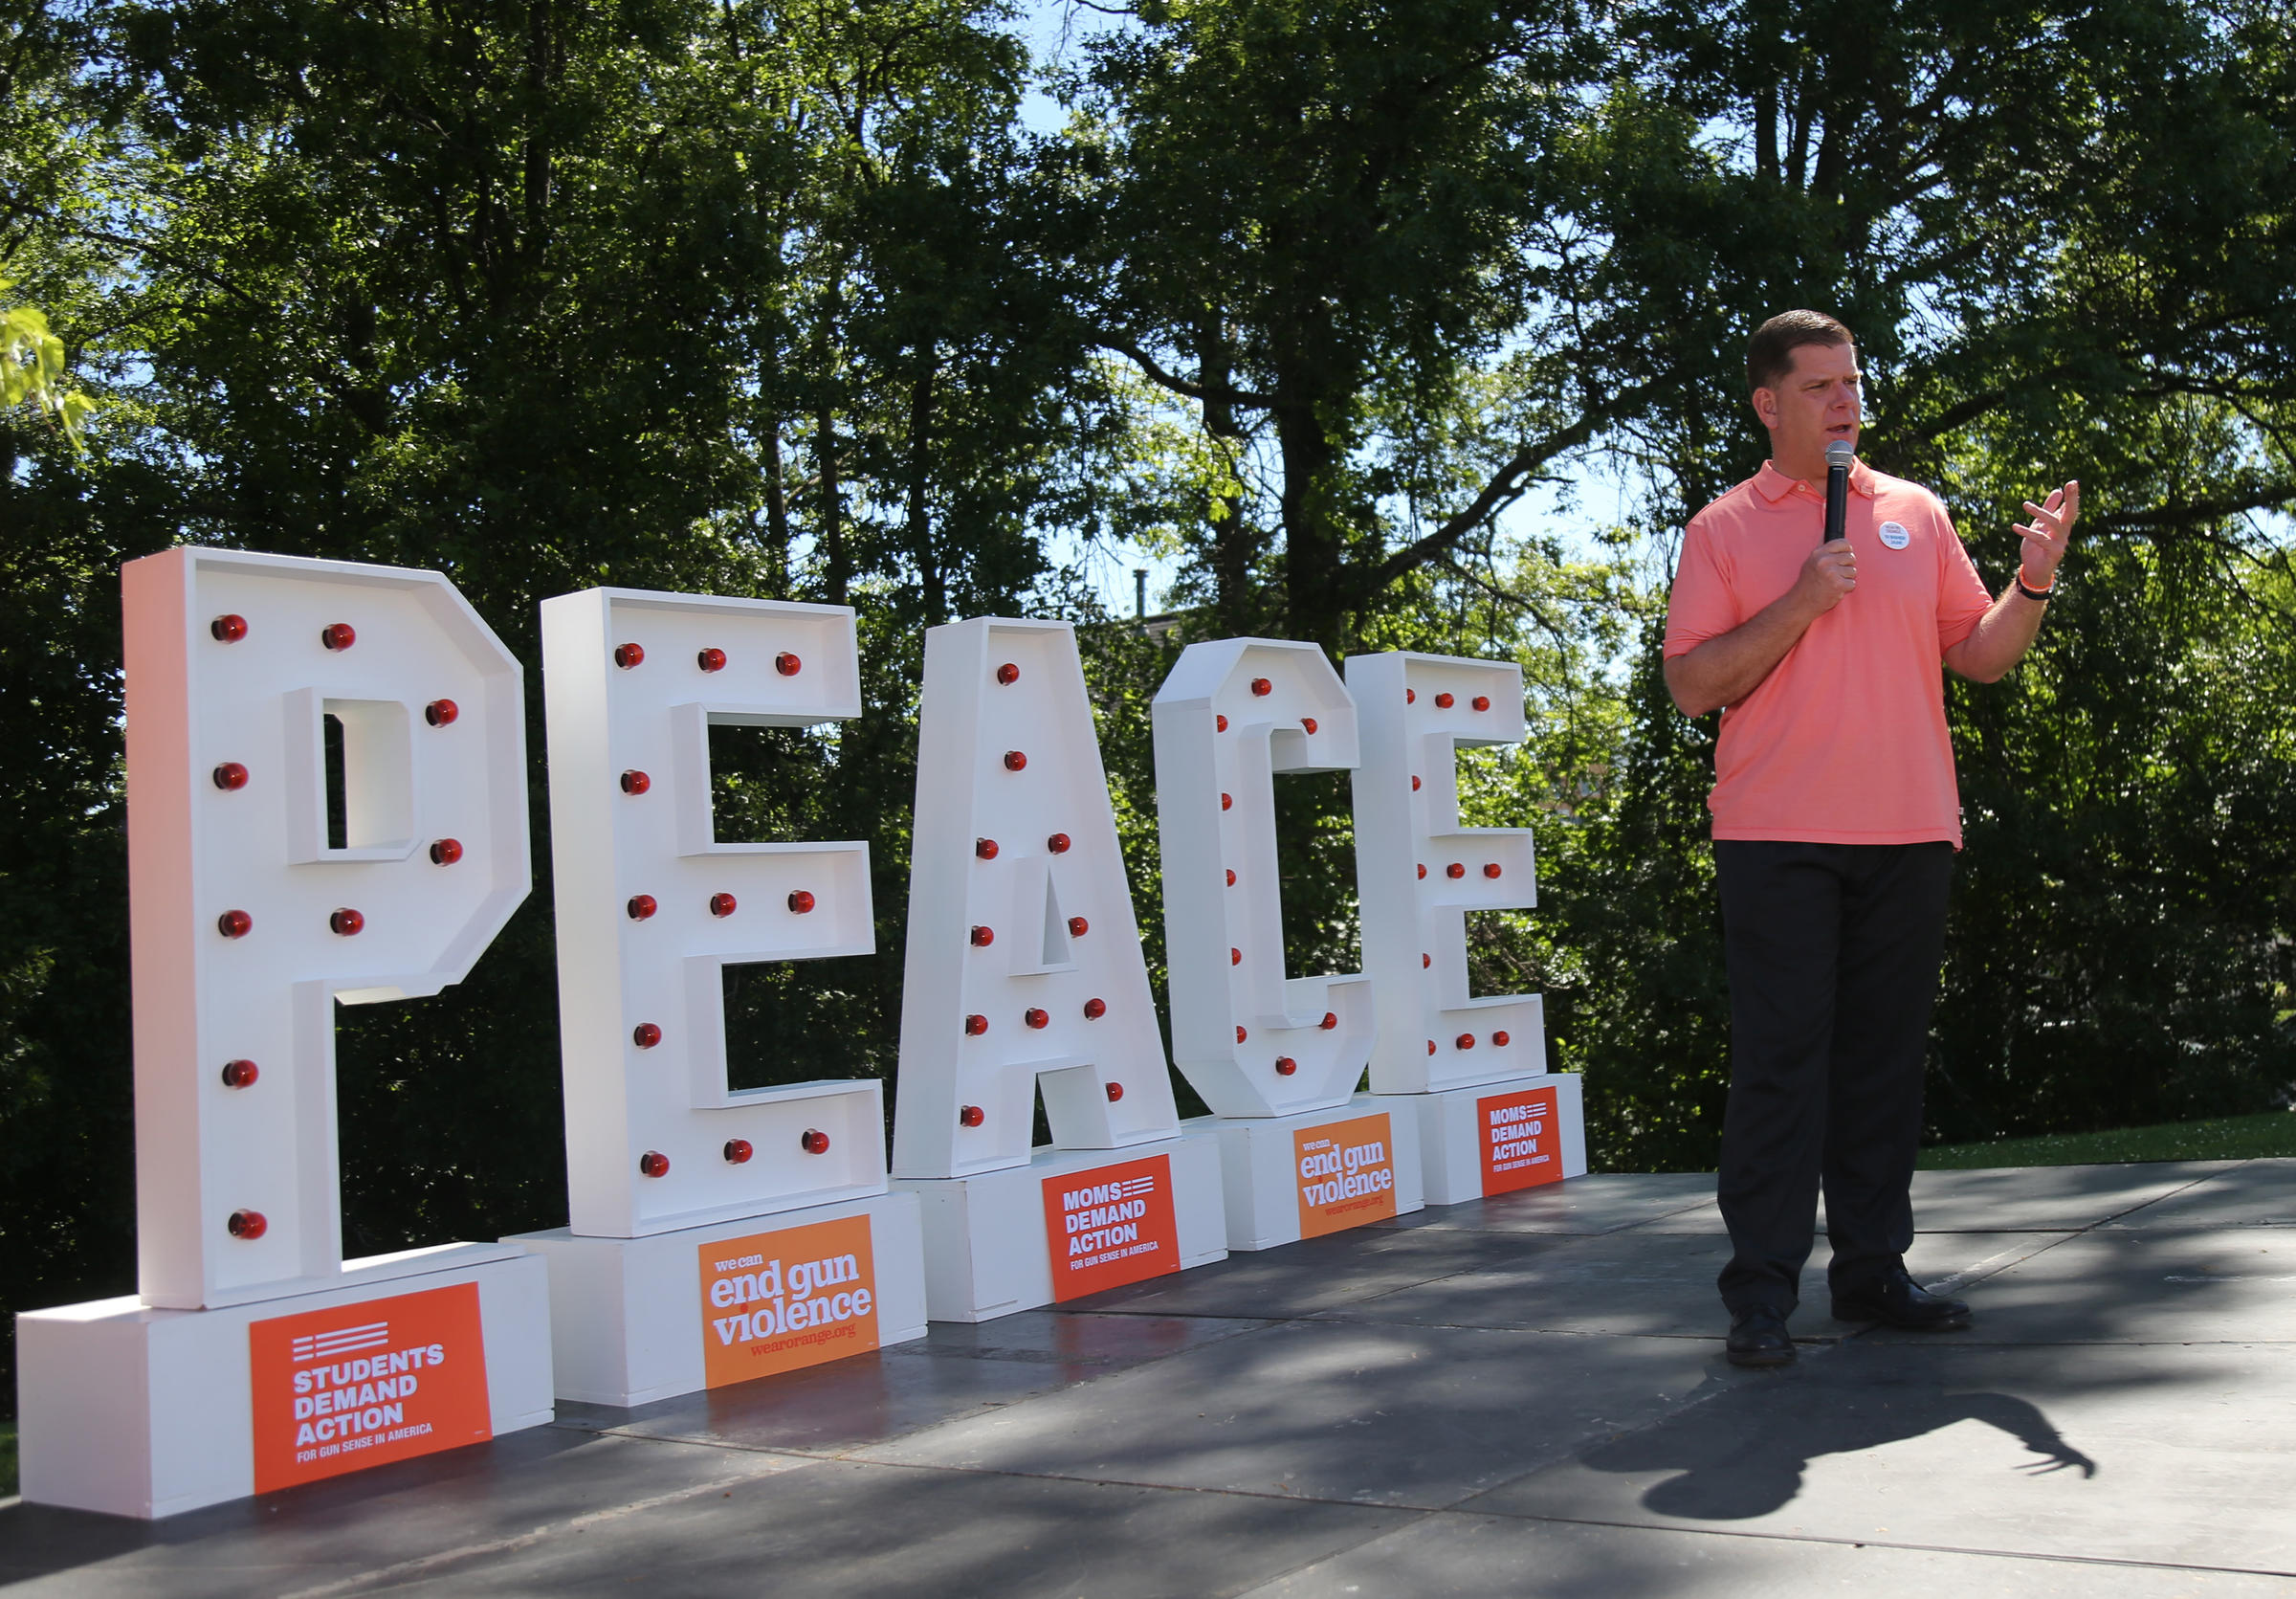 Mayor Walsh speaking at even in front of Peace sign